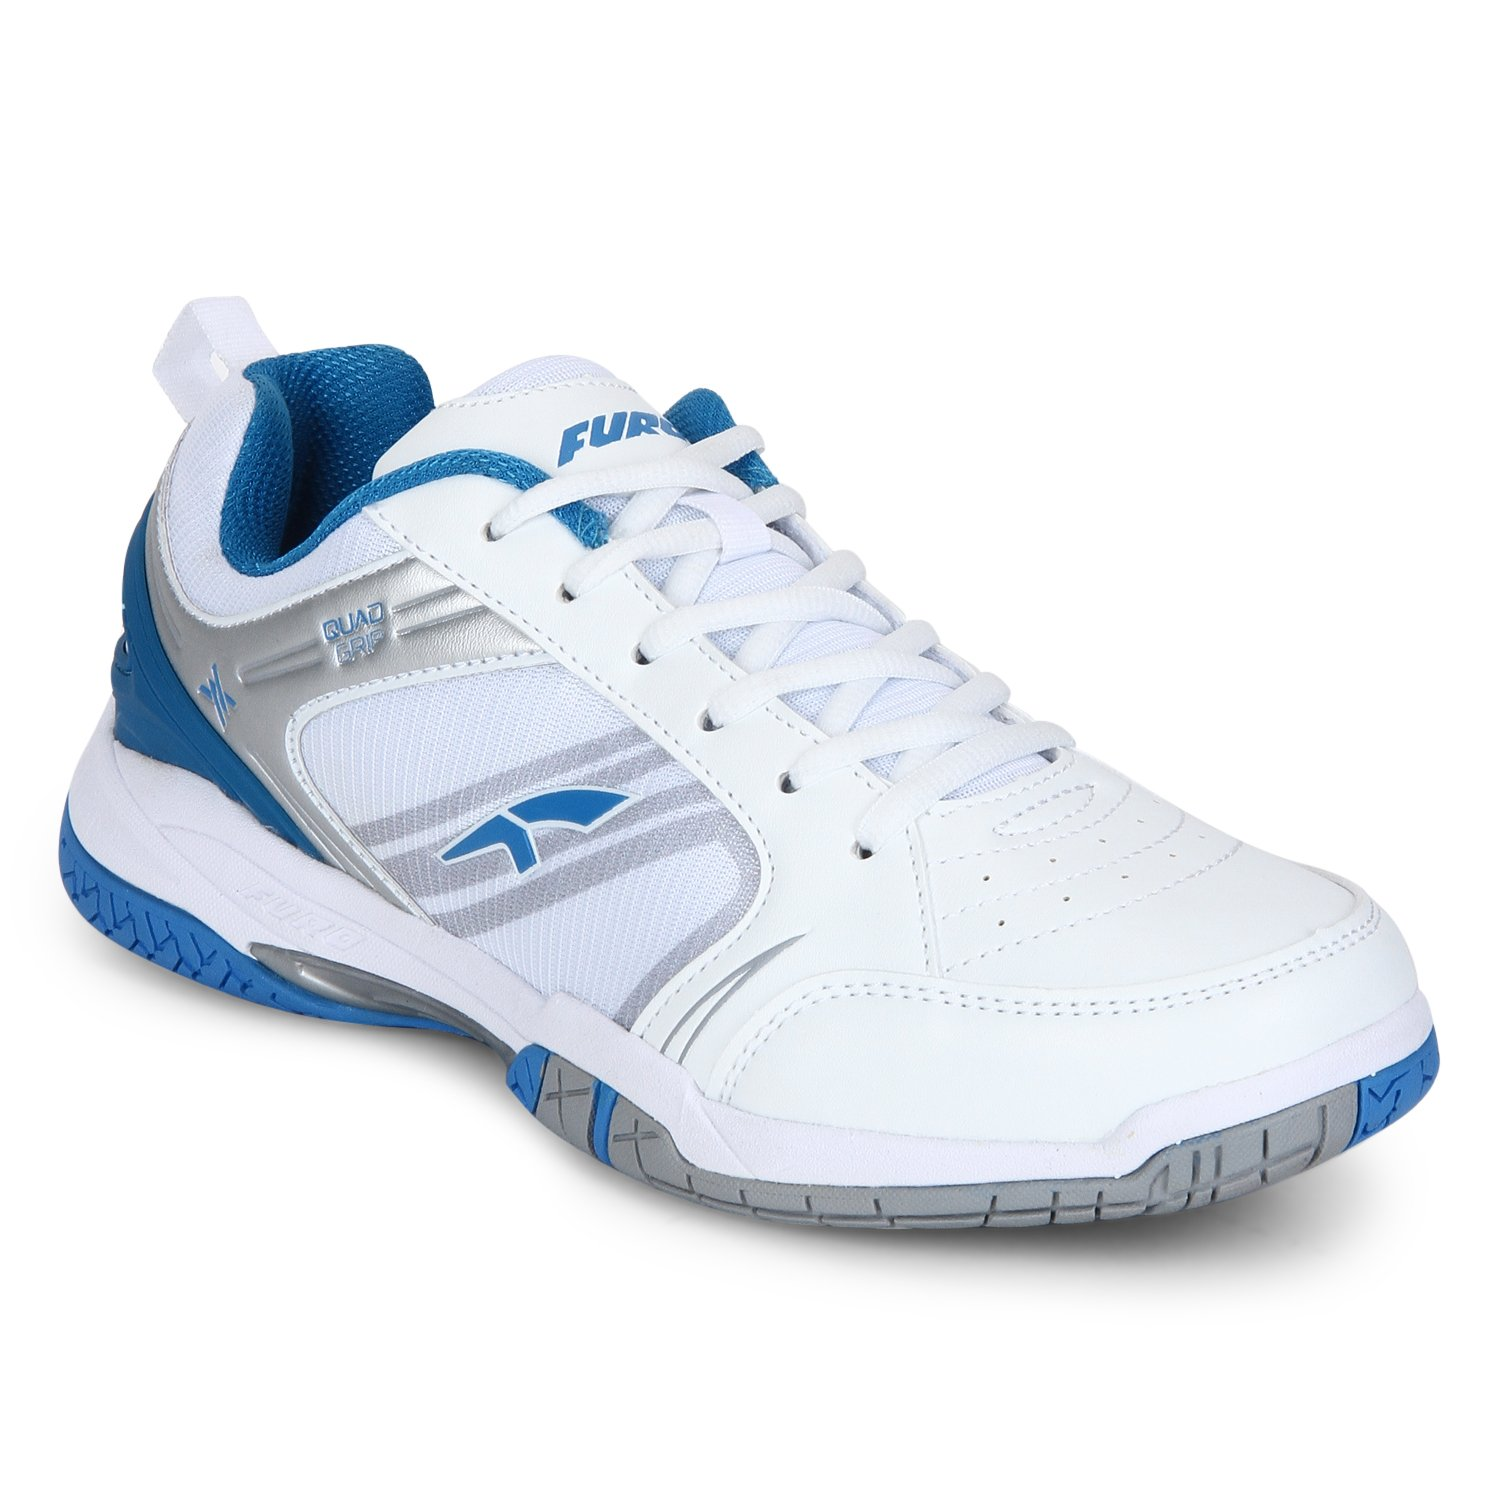 Red Chief Men's T6001 Tennis Shoes